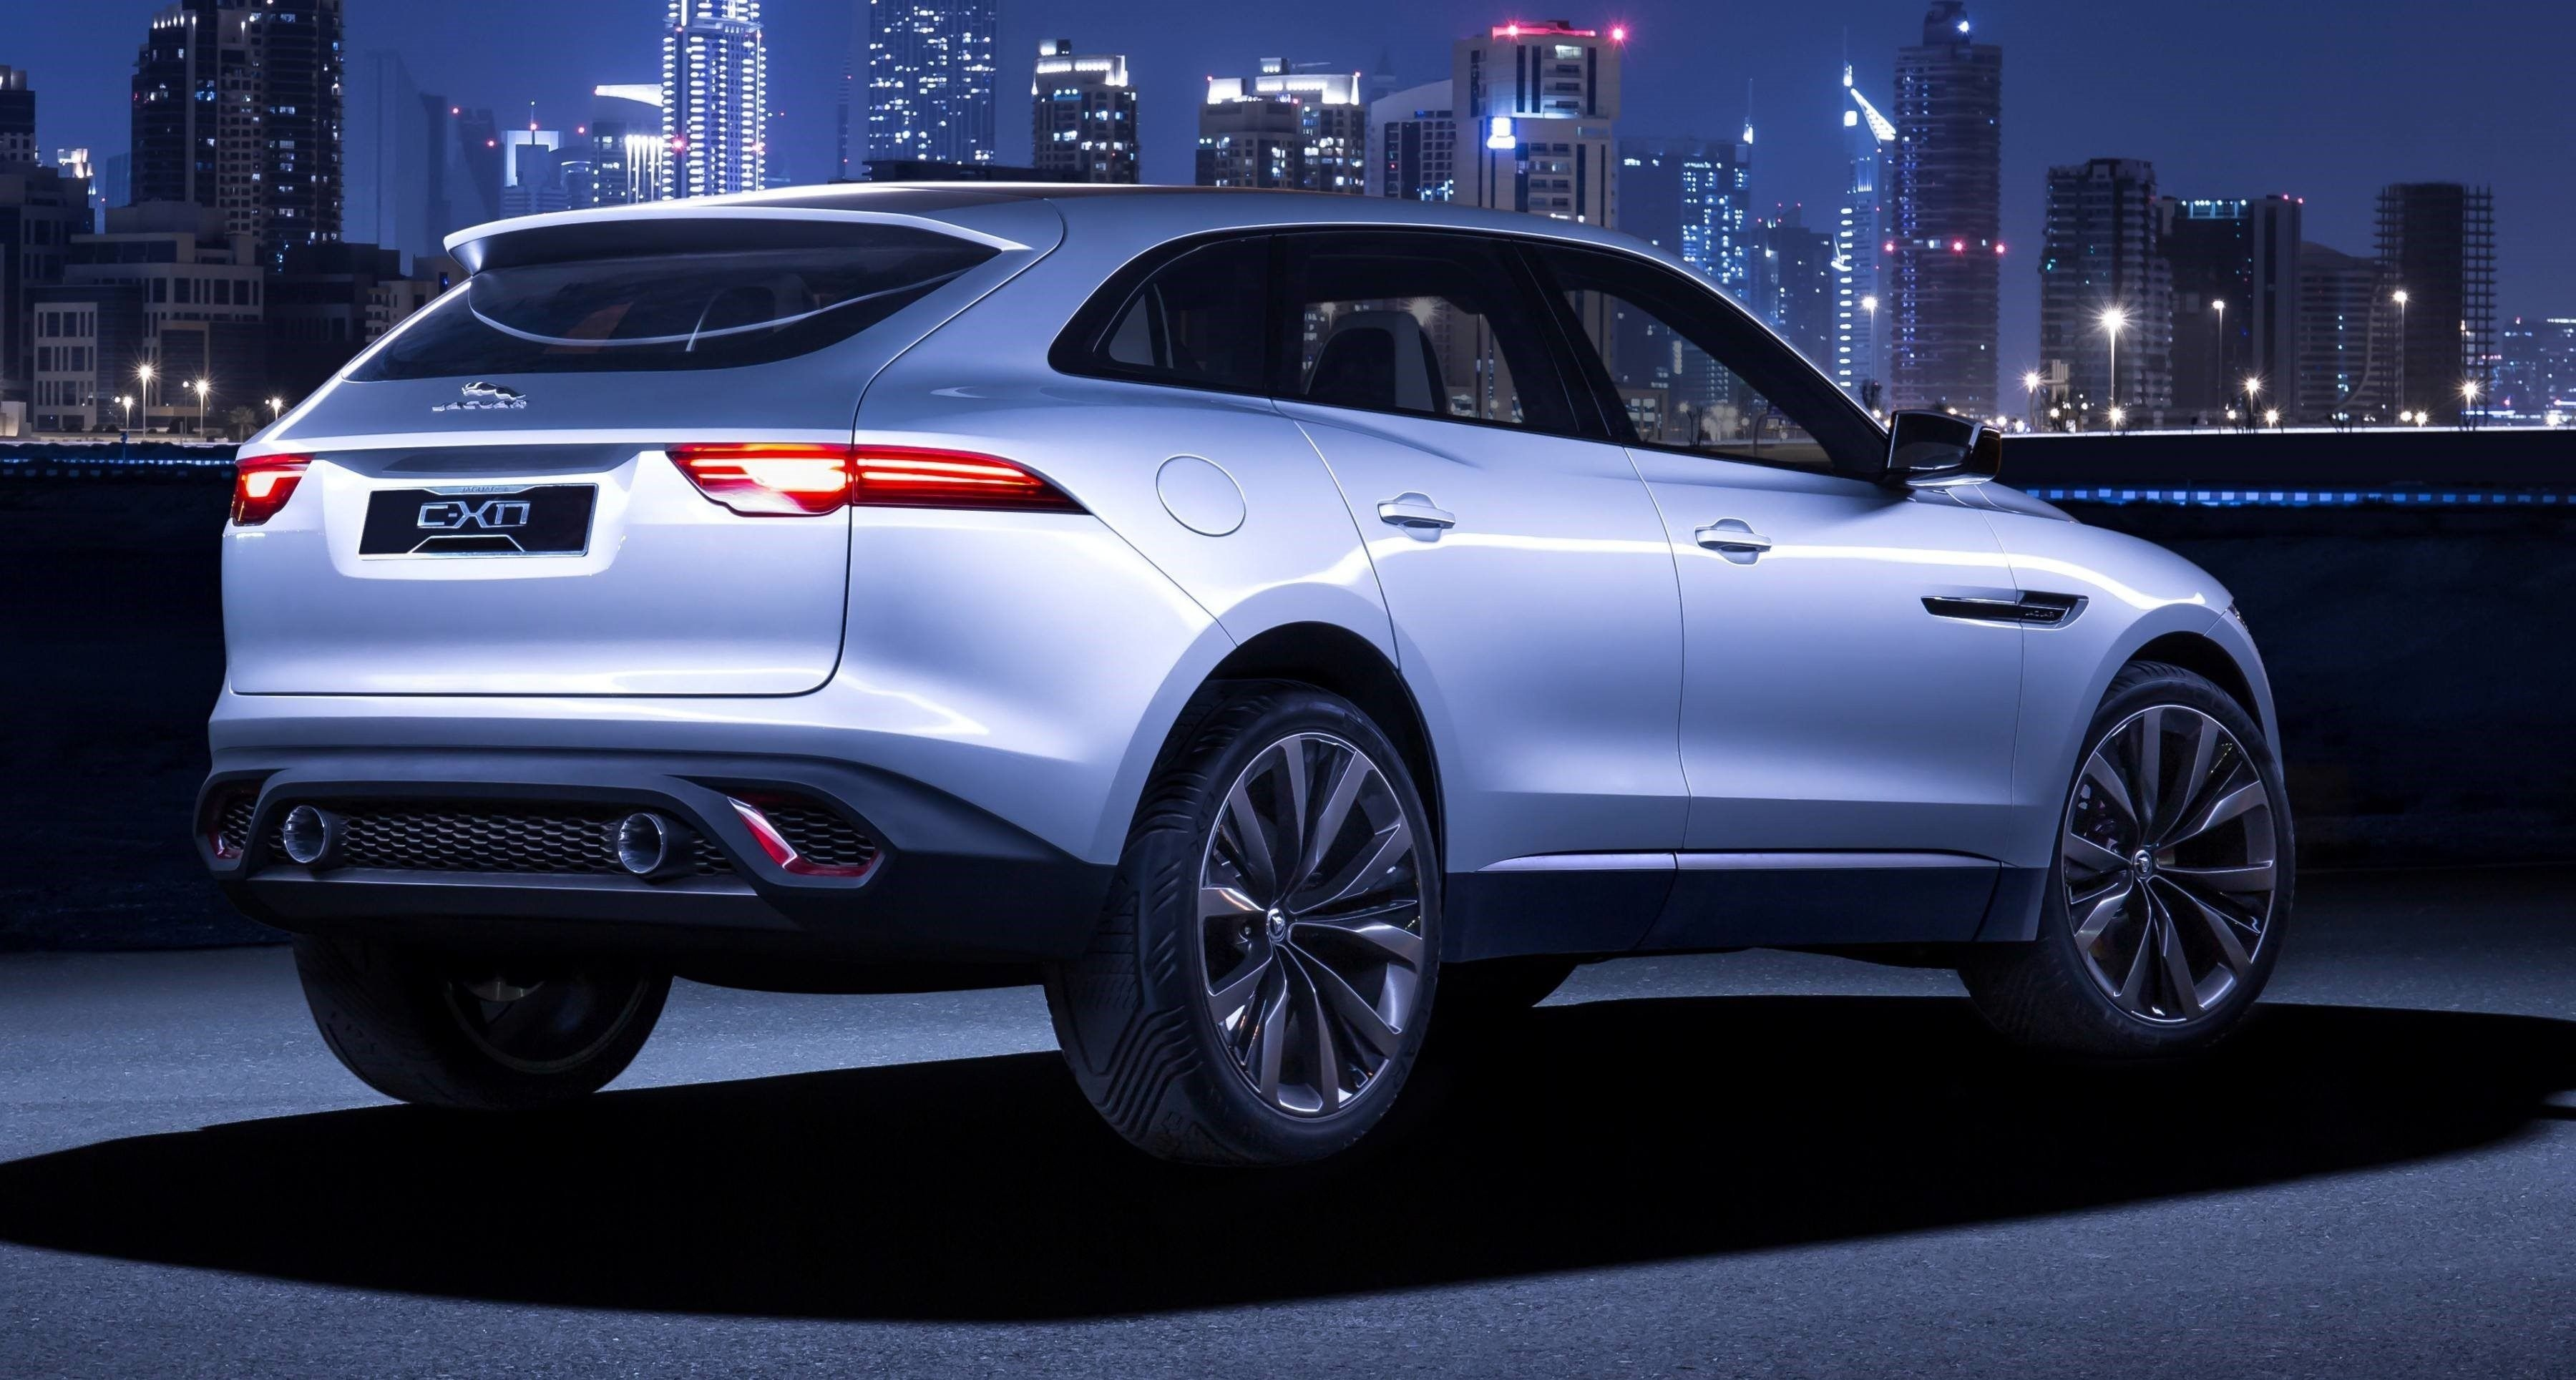 92 The 2019 Jaguar C X17 Crossover Price and Release date